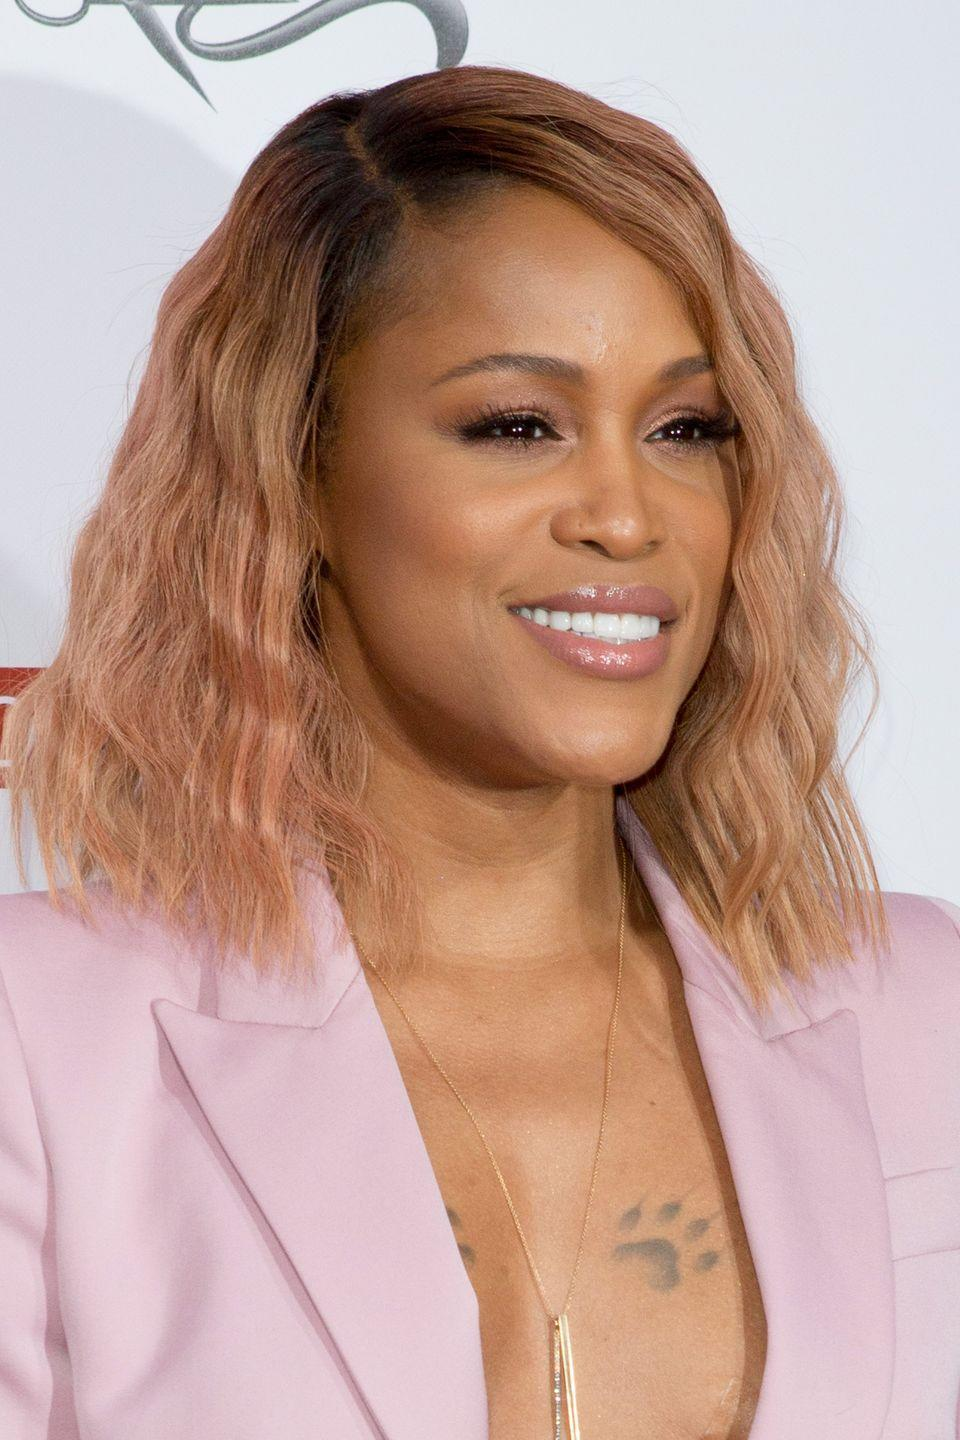 """<p>Eve is known for her blonde hair, but she mixed things up in 2016 with a softer, more adventurous shade.</p><p>""""Brown-skinned women with neutral undertones look fabulous with rosy-gold highlights,"""" says <a href=""""https://www.instagram.com/yourhairsbestfriend/"""" rel=""""nofollow noopener"""" target=""""_blank"""" data-ylk=""""slk:Chereen Monet"""" class=""""link rapid-noclick-resp"""">Chereen Monet</a>, a NYC-based master colorist who specializes in textured hair. """"It brings out the natural bronze of the skin.""""</p>"""